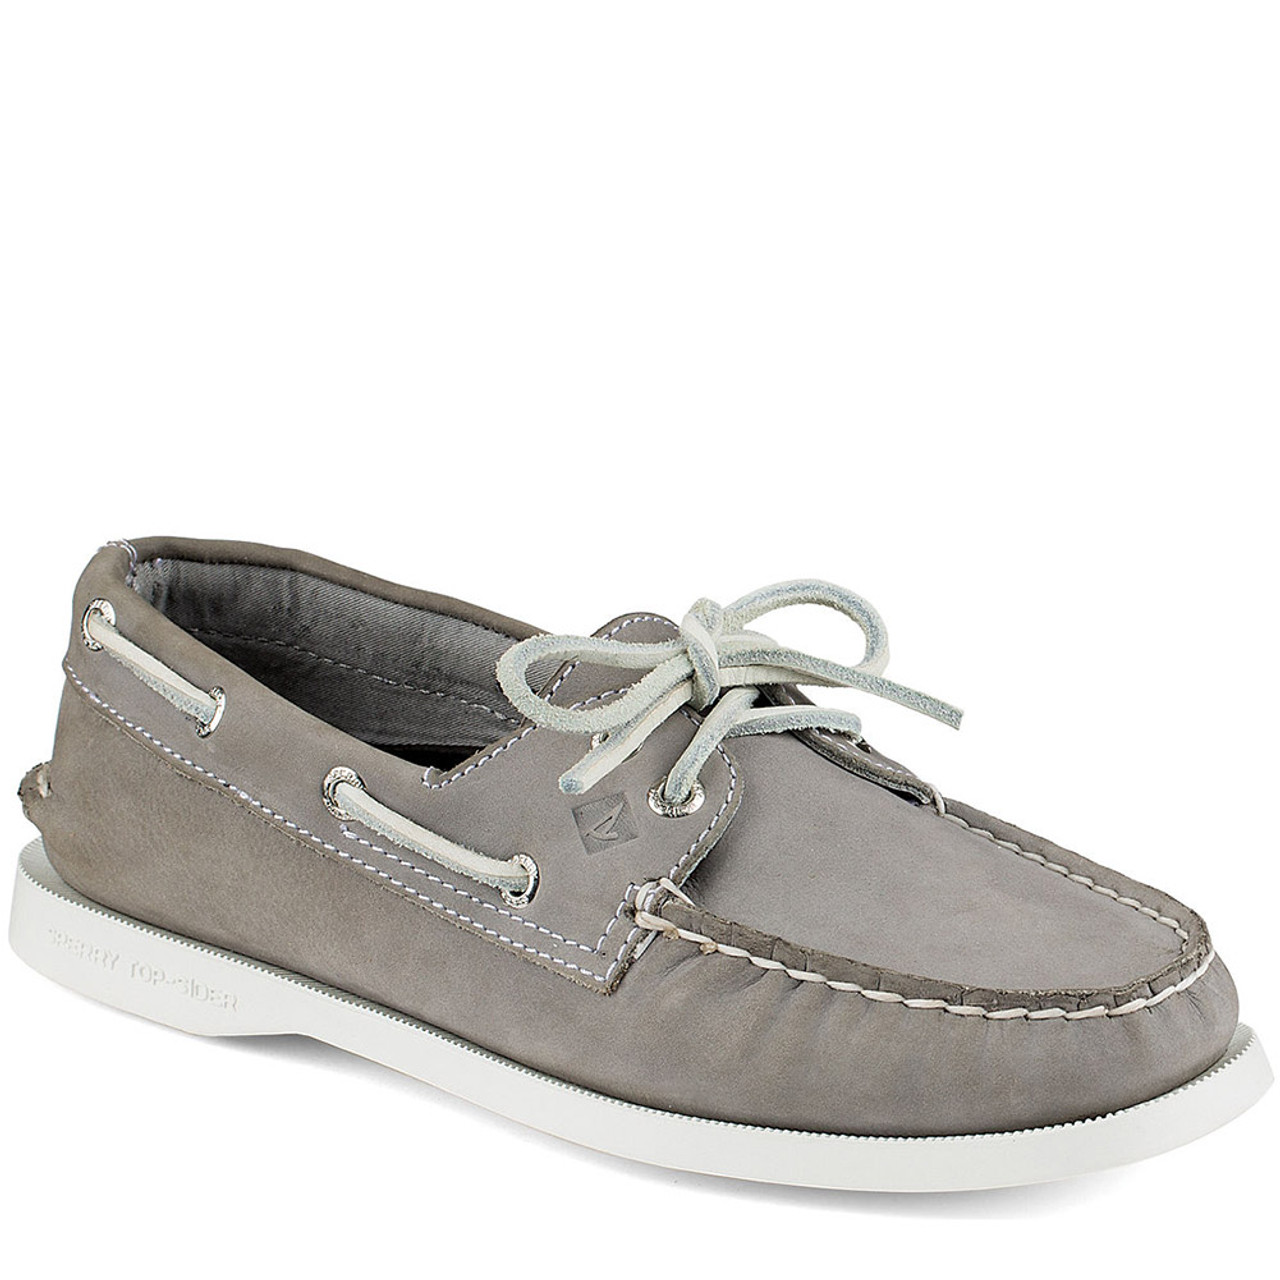 sperry sts94328 s a o grey 2 eye boat shoes family